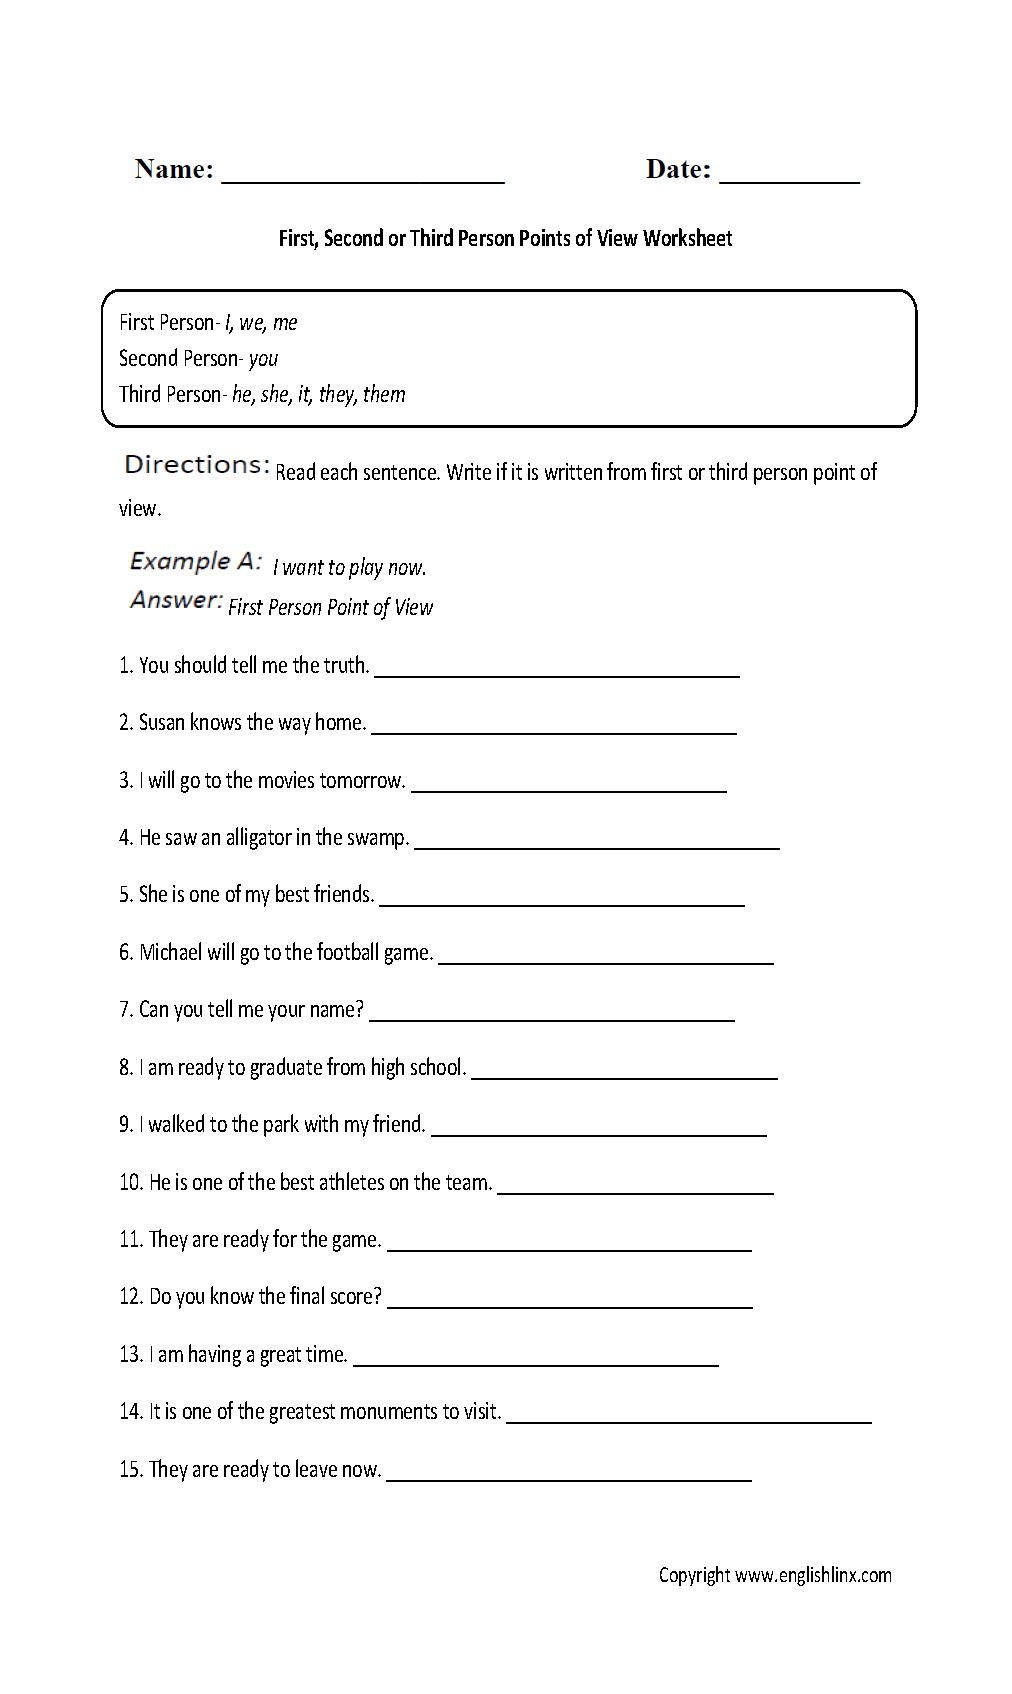 Weirdmailus  Marvelous Englishlinxcom  Point Of View Worksheets With Luxury Point Of View Worksheet With Astonishing Simple Problem Solving Worksheets Also Free Grade  Worksheets In Addition Counting Patterns Worksheets Grade  And Worksheets On Adverbs For Grade  As Well As Fun Addition Worksheets For St Grade Additionally Three Circle Venn Diagram Worksheet From Englishlinxcom With Weirdmailus  Luxury Englishlinxcom  Point Of View Worksheets With Astonishing Point Of View Worksheet And Marvelous Simple Problem Solving Worksheets Also Free Grade  Worksheets In Addition Counting Patterns Worksheets Grade  From Englishlinxcom